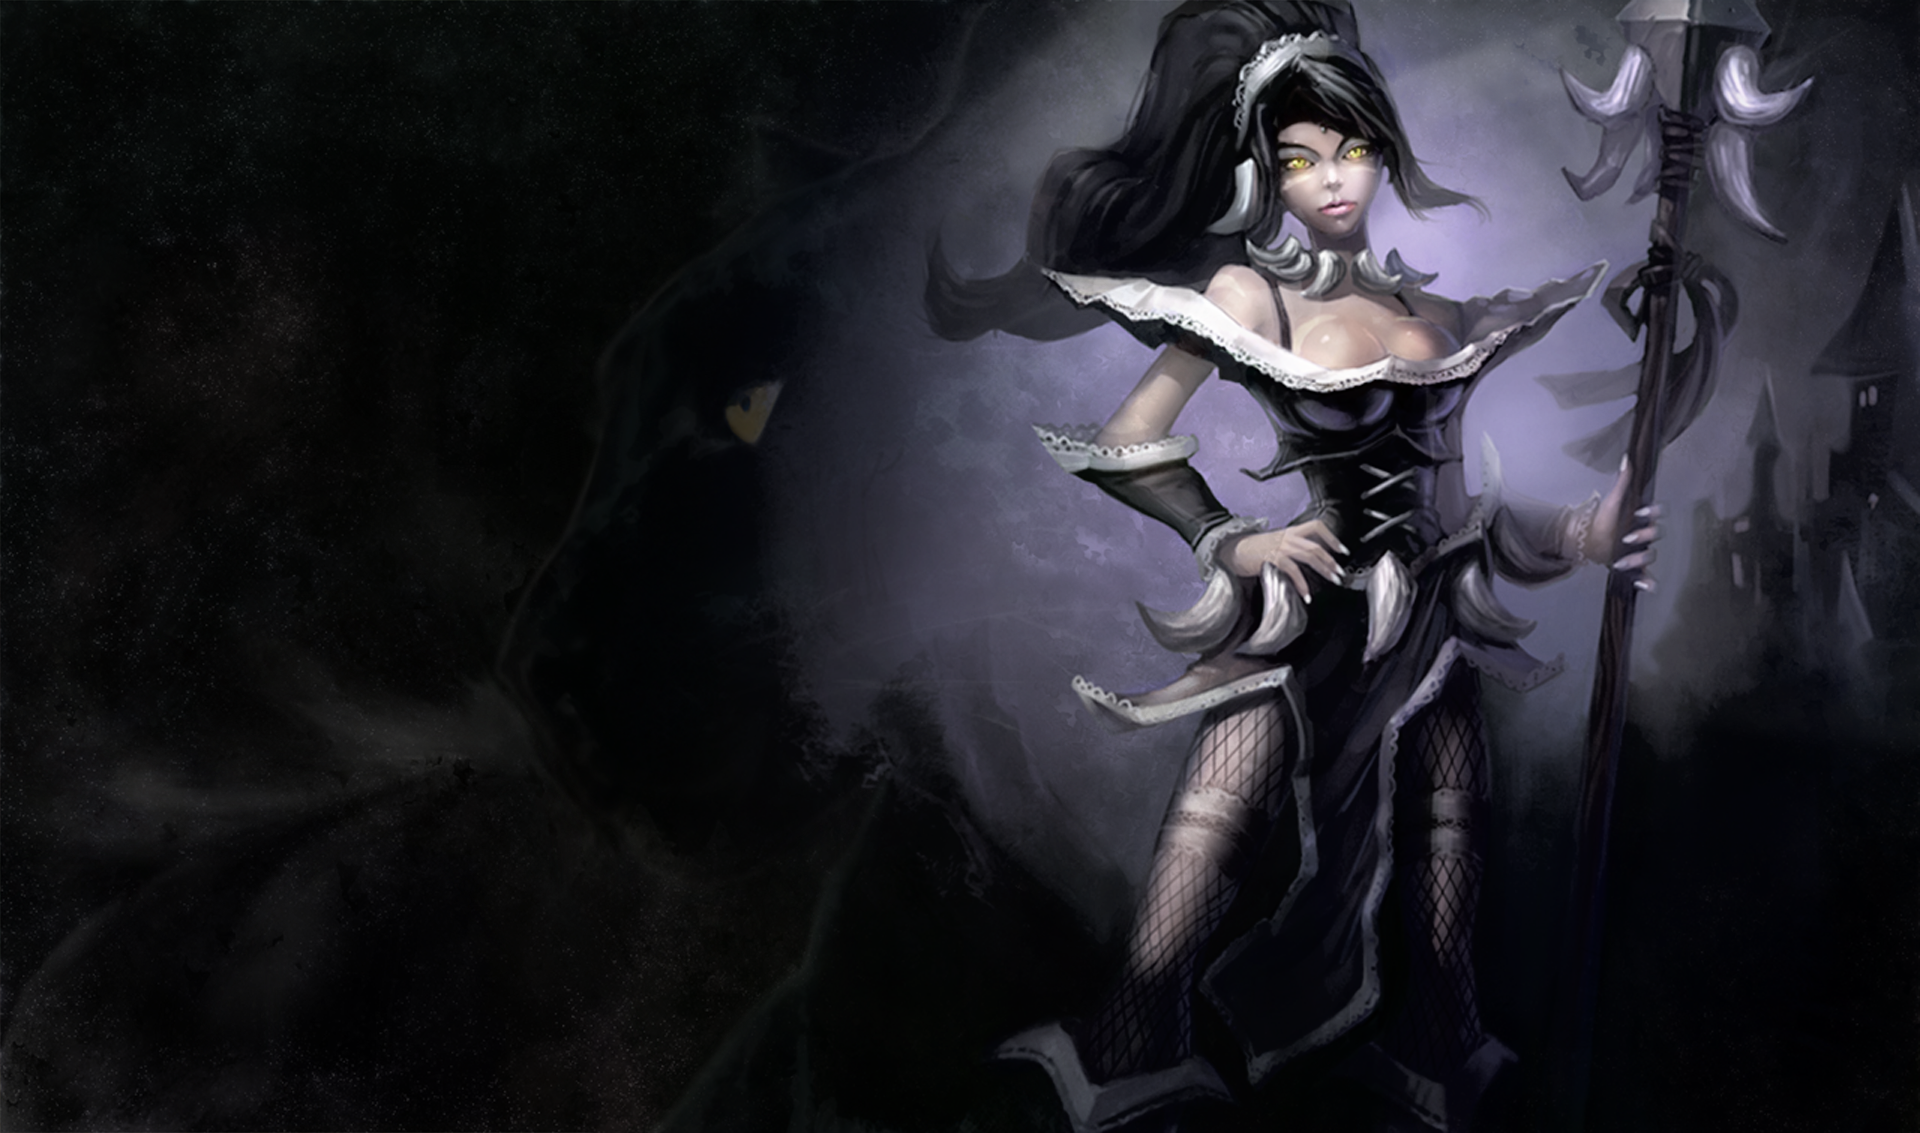 French Maid Nidalee Wallpaper by dreaming myth 1920x1133